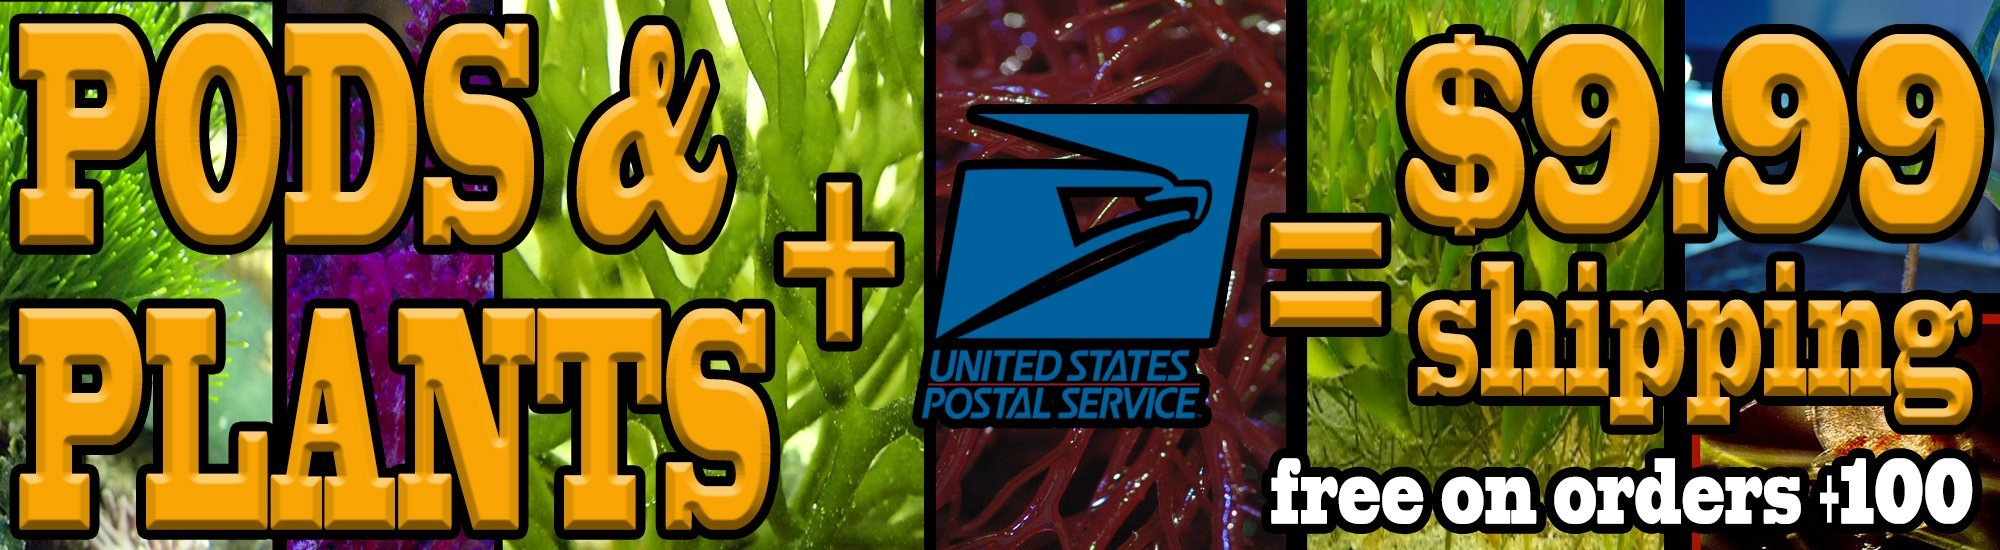 [Image: Pods-Plants-USPS-shipping.jpg]